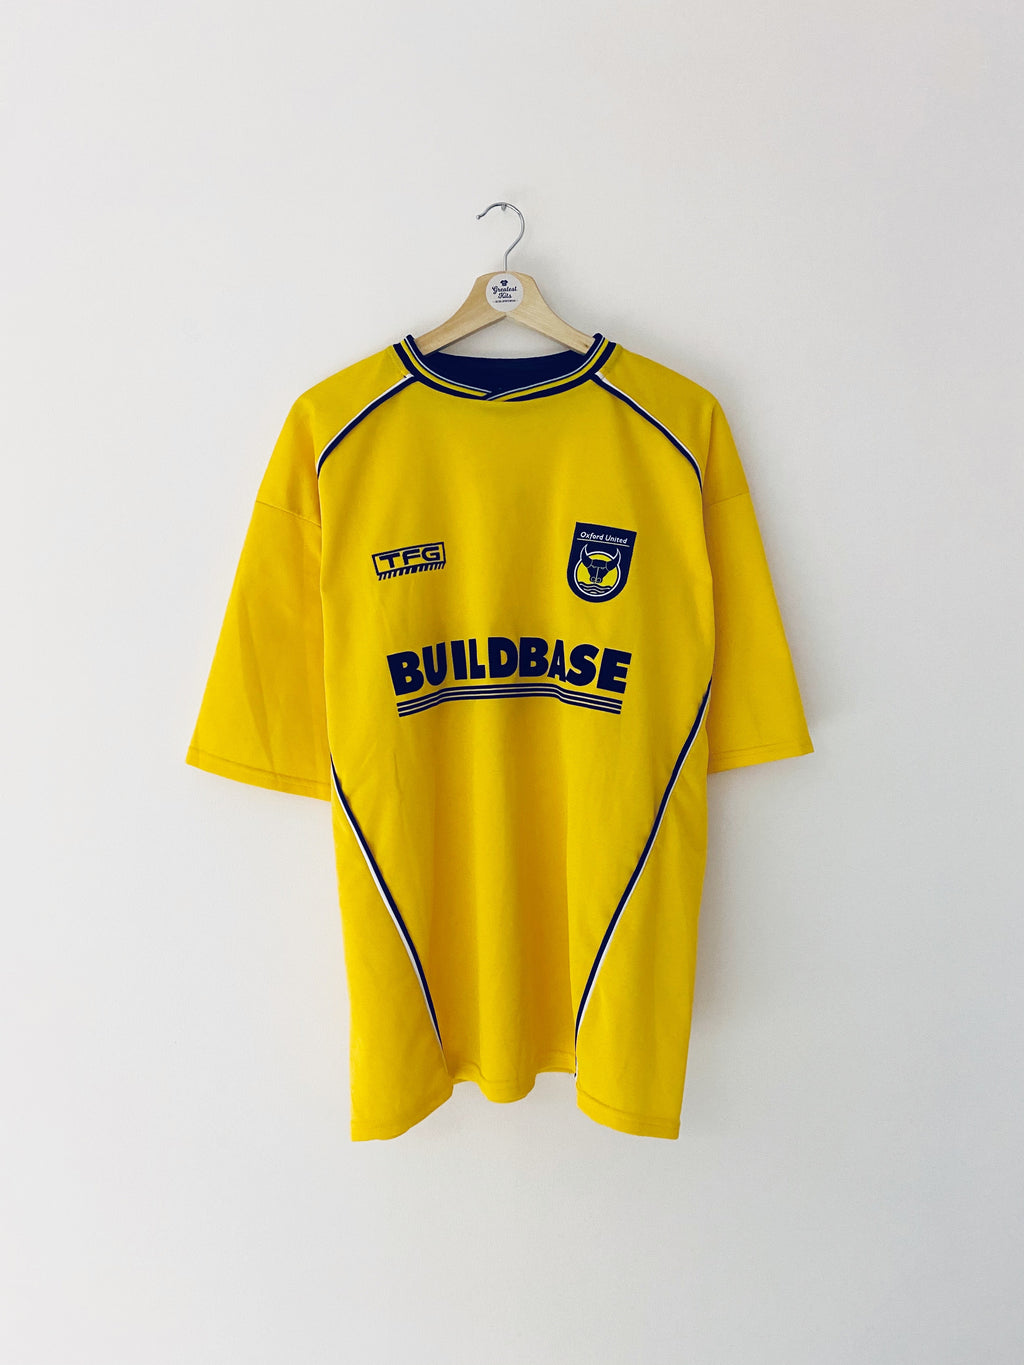 2003/05 Oxford United Home Shirt (L) 9.5/10